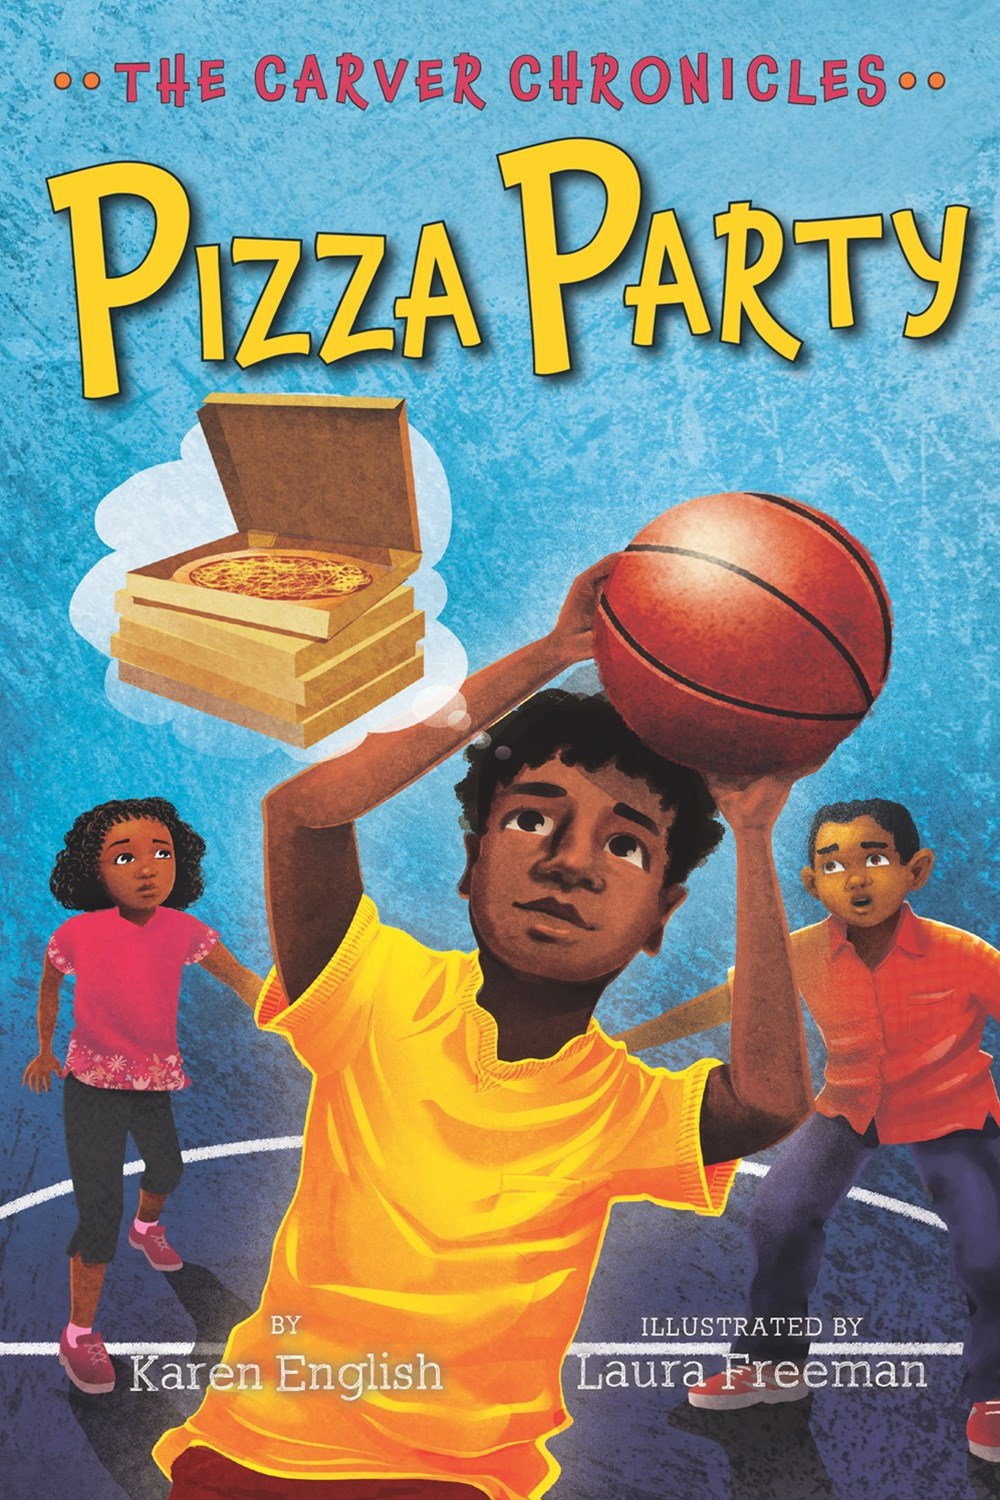 Pizza Party: The Carver Chronicles, Book 6